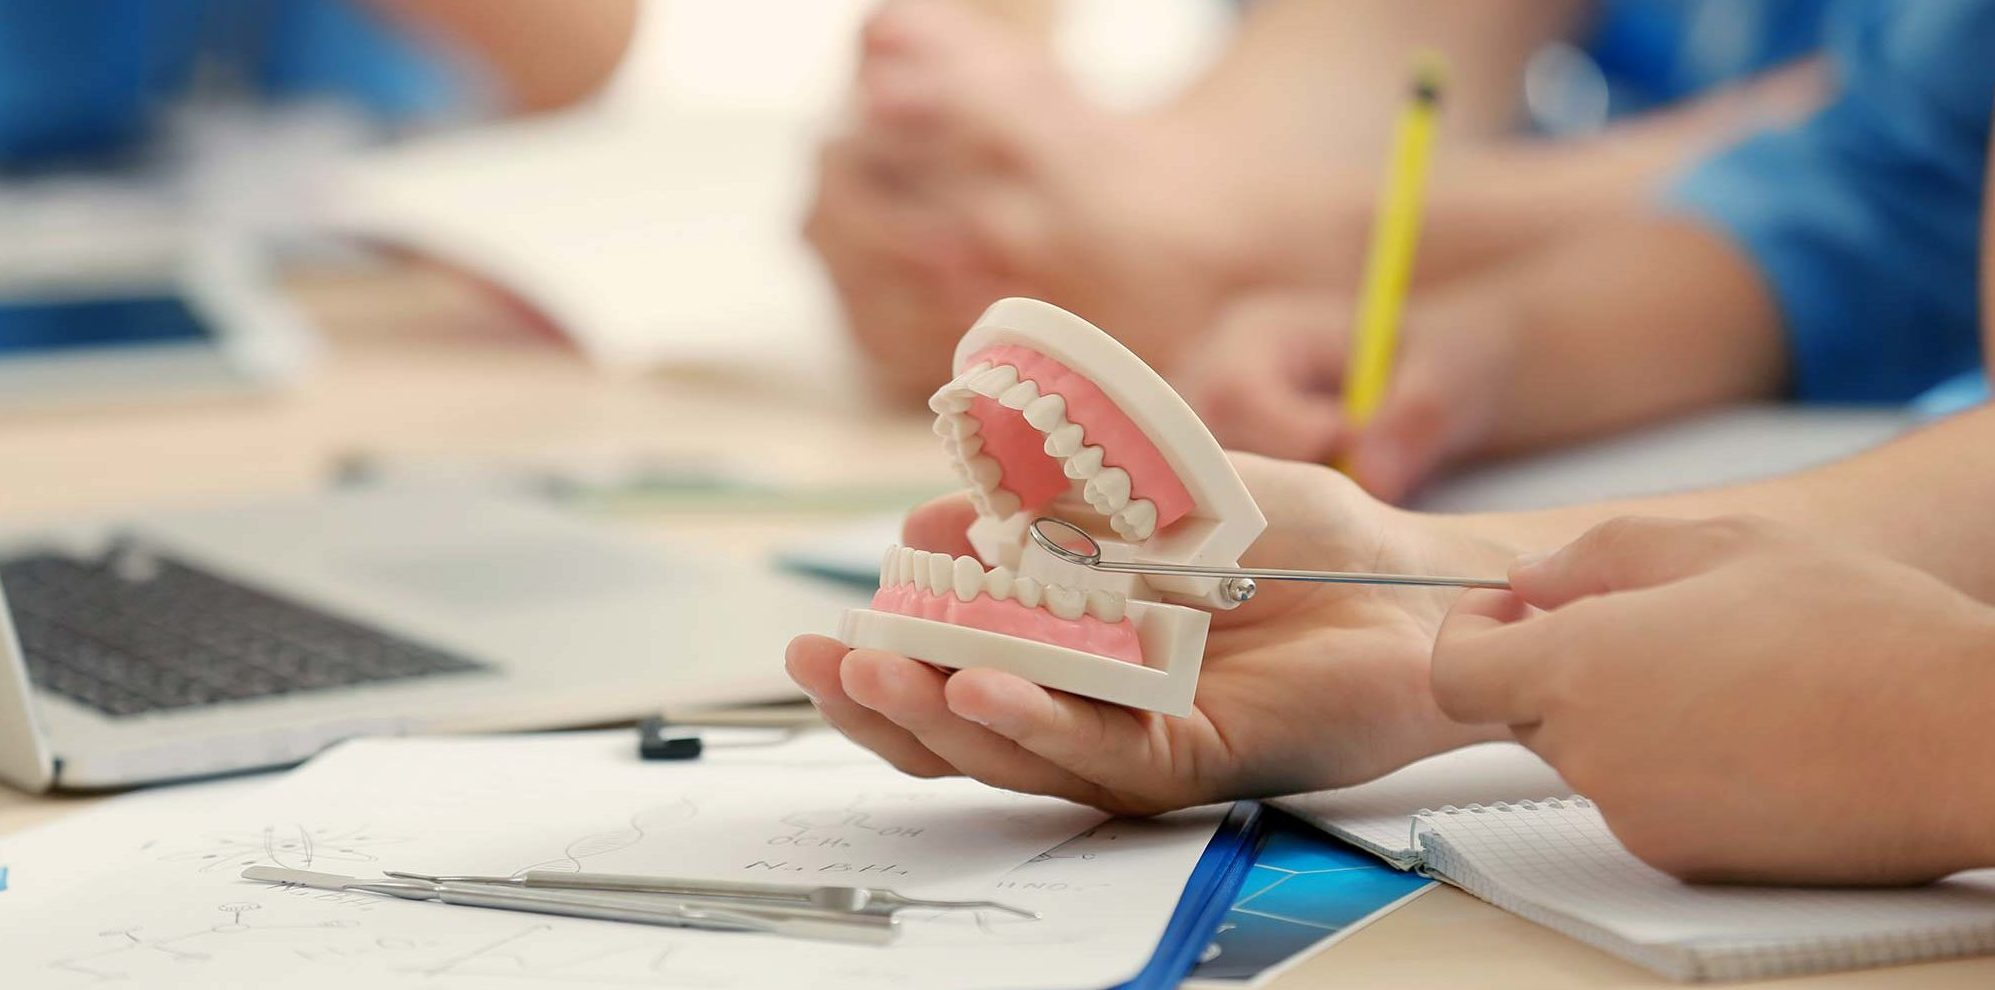 The UK government has lifted the cap on dentistry places at universities amidst the chaos of A Level results